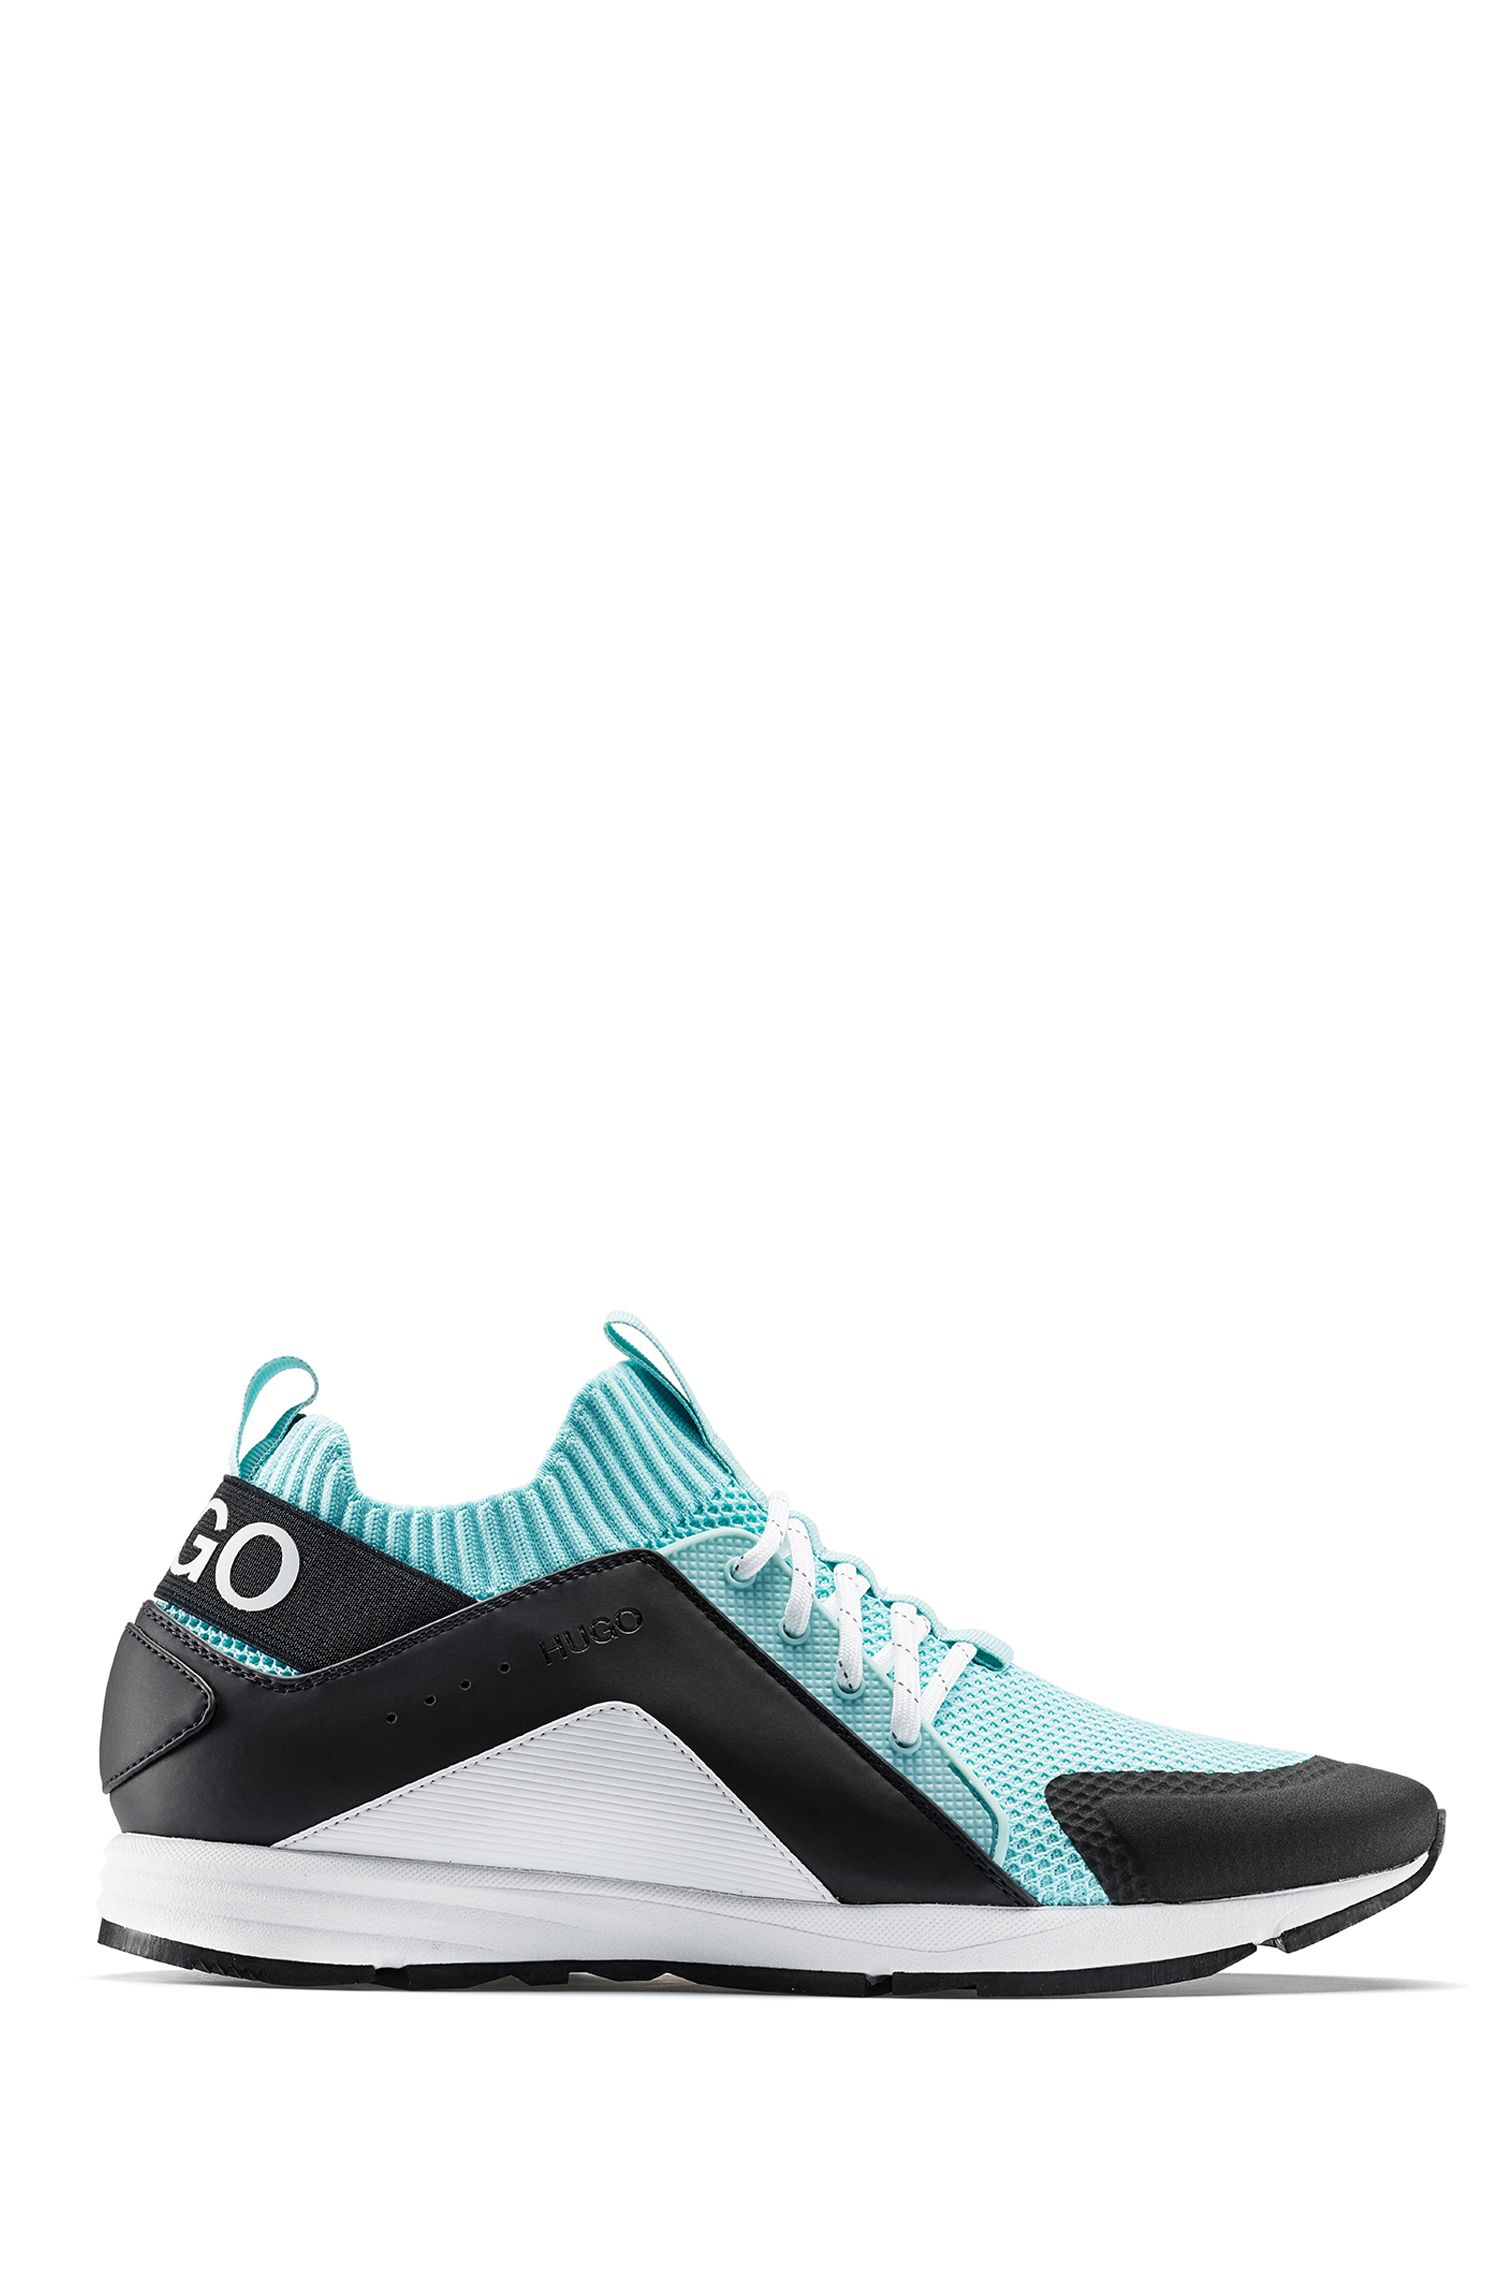 Mesh-detail trainers with Vibram sole and knitted sock, Turquoise